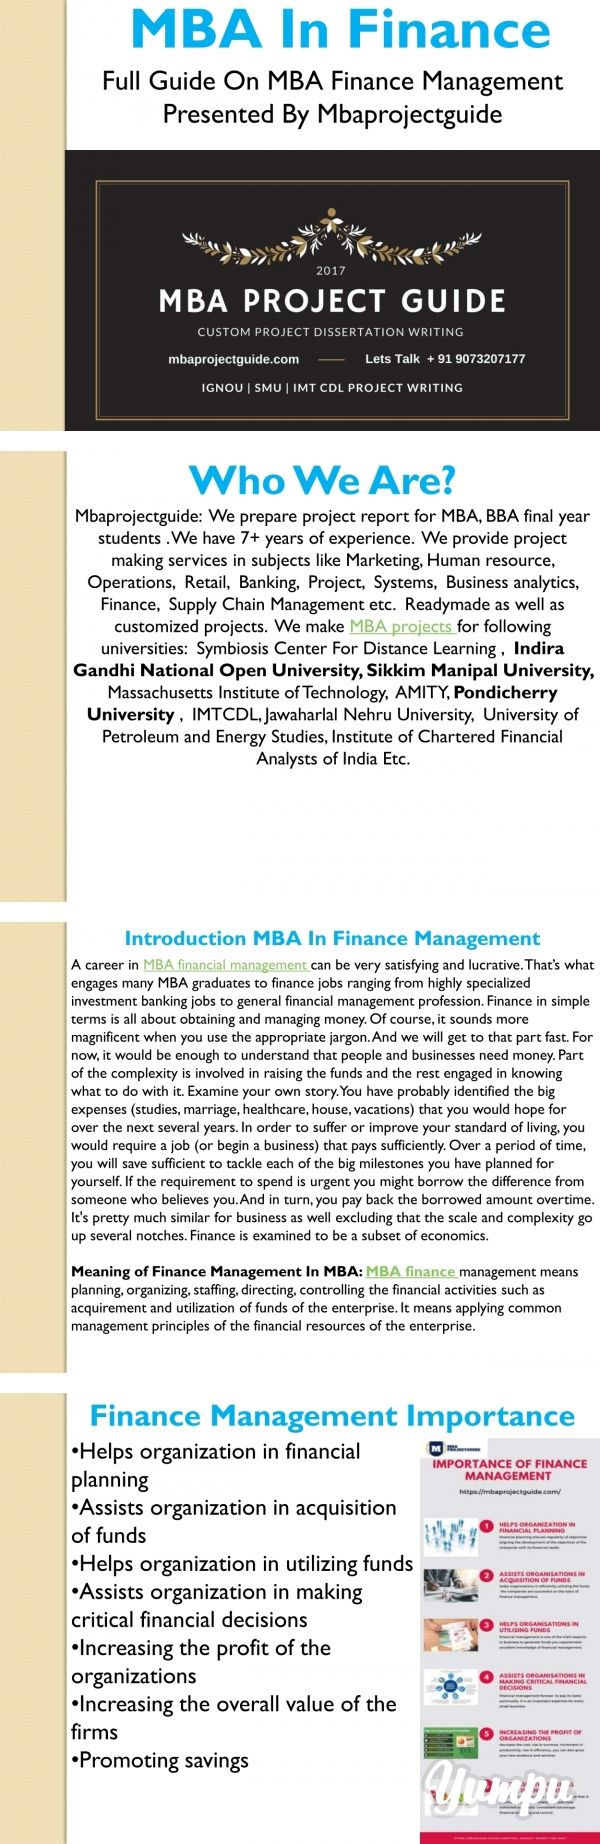 Mbaprojectguide In Finance Magazine With 15 Page Visit U For Help Related To The Final Project Report Mba We Offer S Saving Job Roles Dissertation On